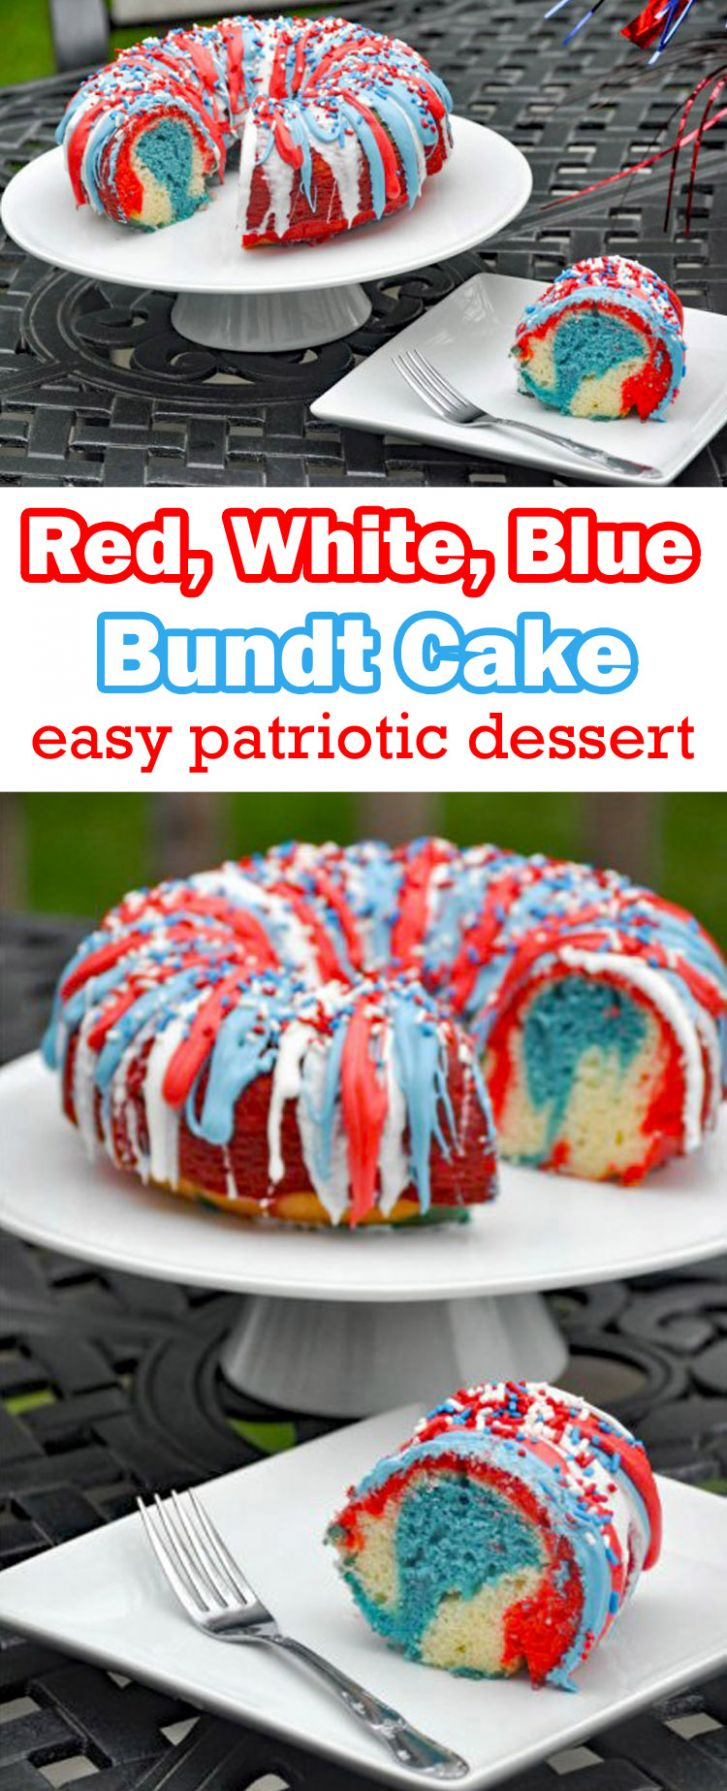 Patriotic Desserts- Red White and Blue Cake - Mommy's Fabulous Finds